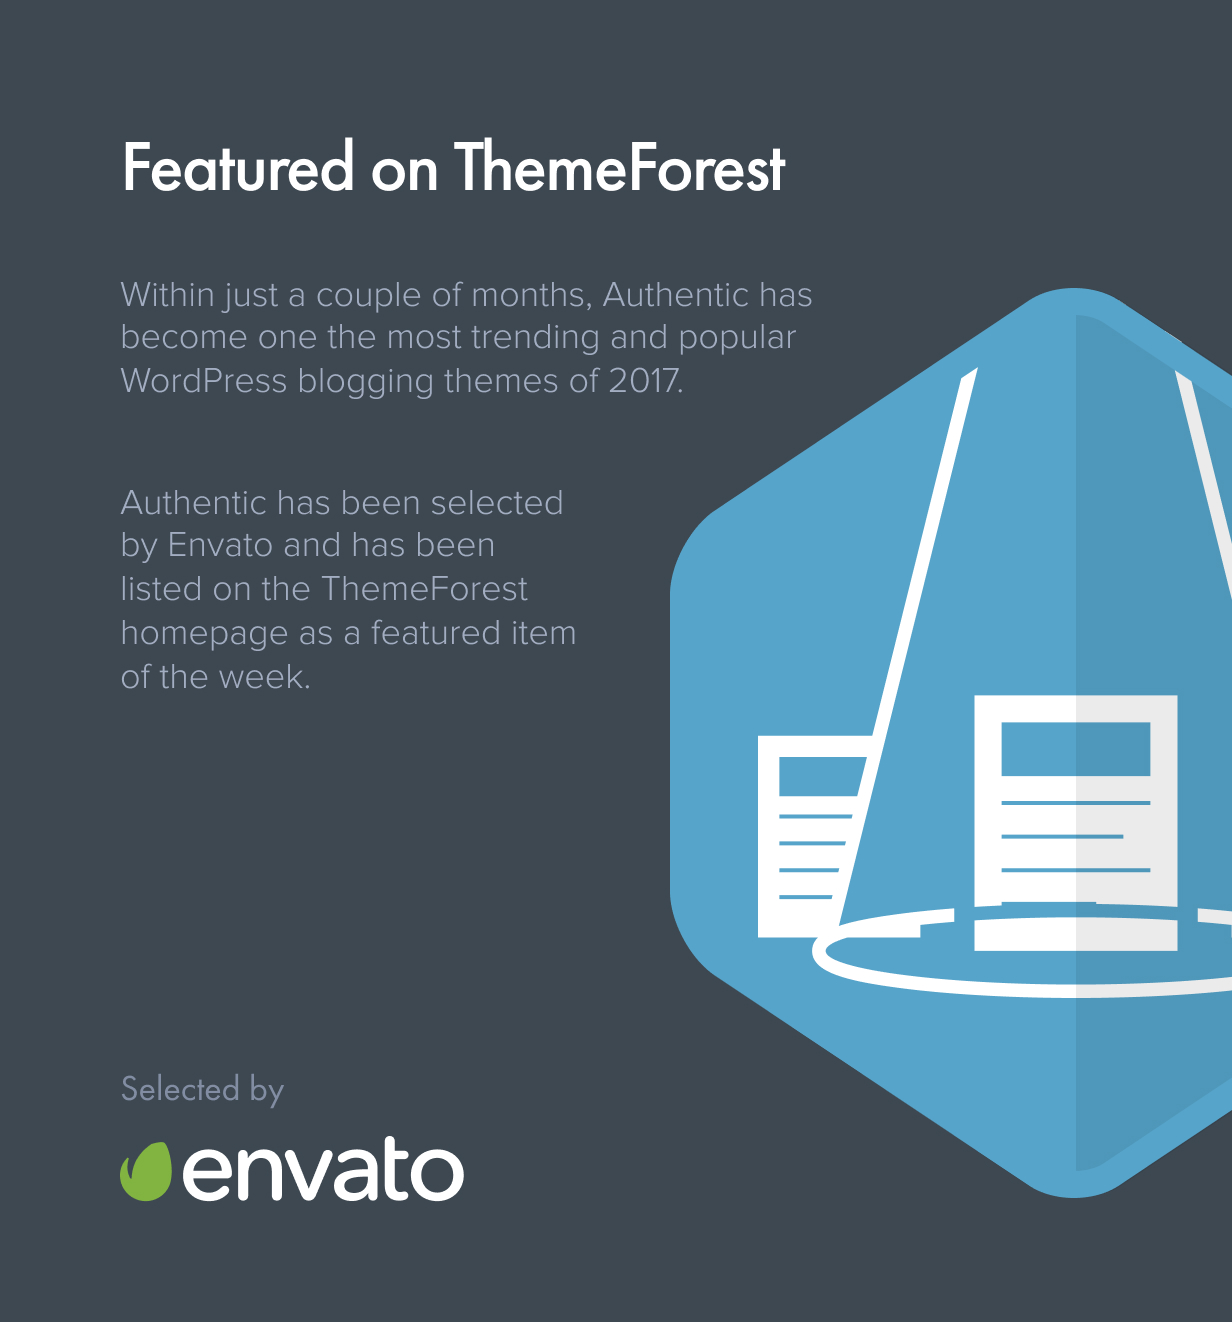 Featured on ThemeForest